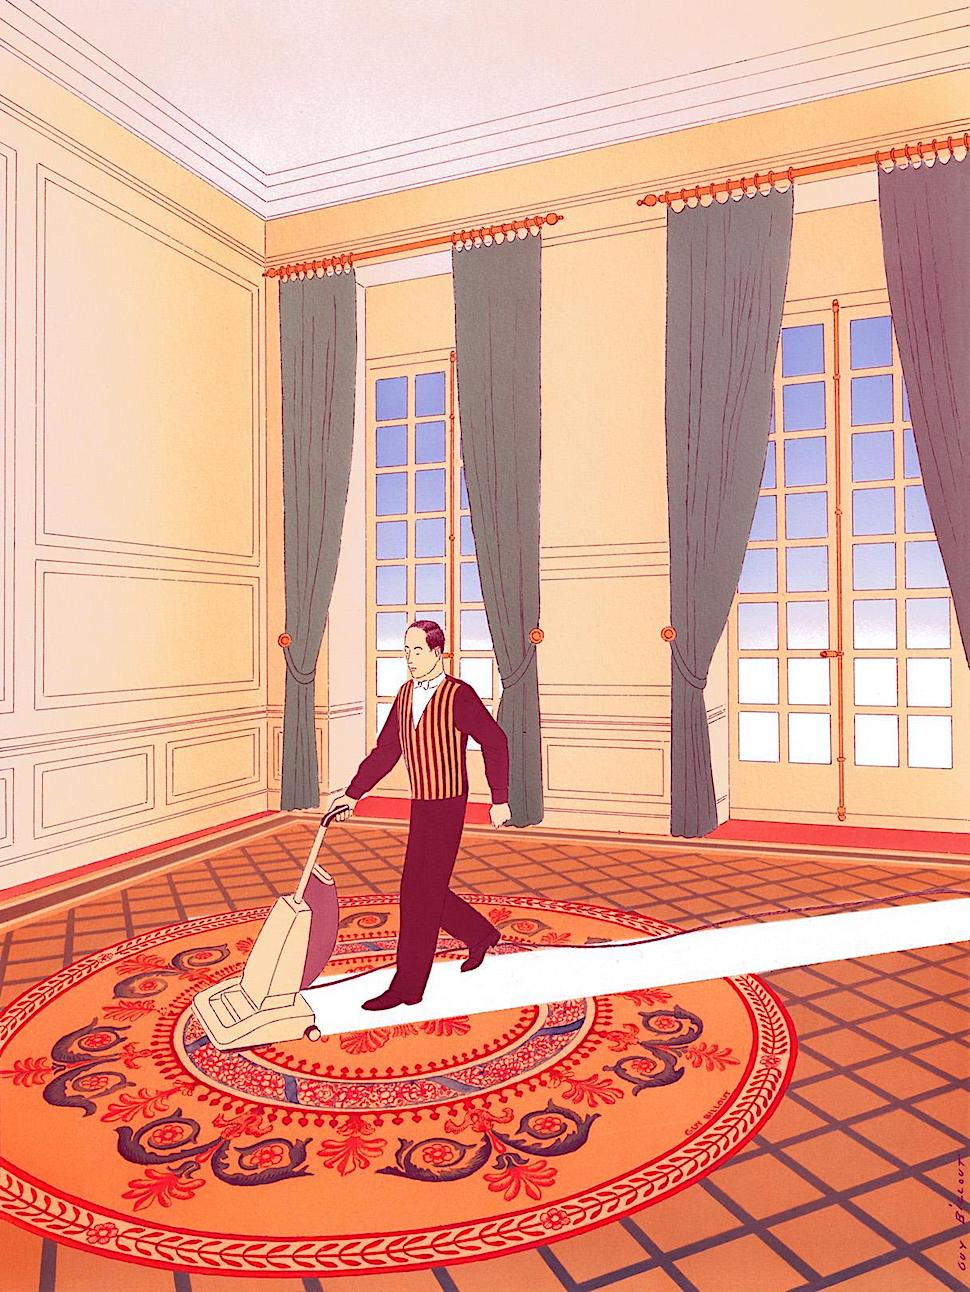 Guy Billout art, a uniformed employee vacuum cleaning a carpet in a large room